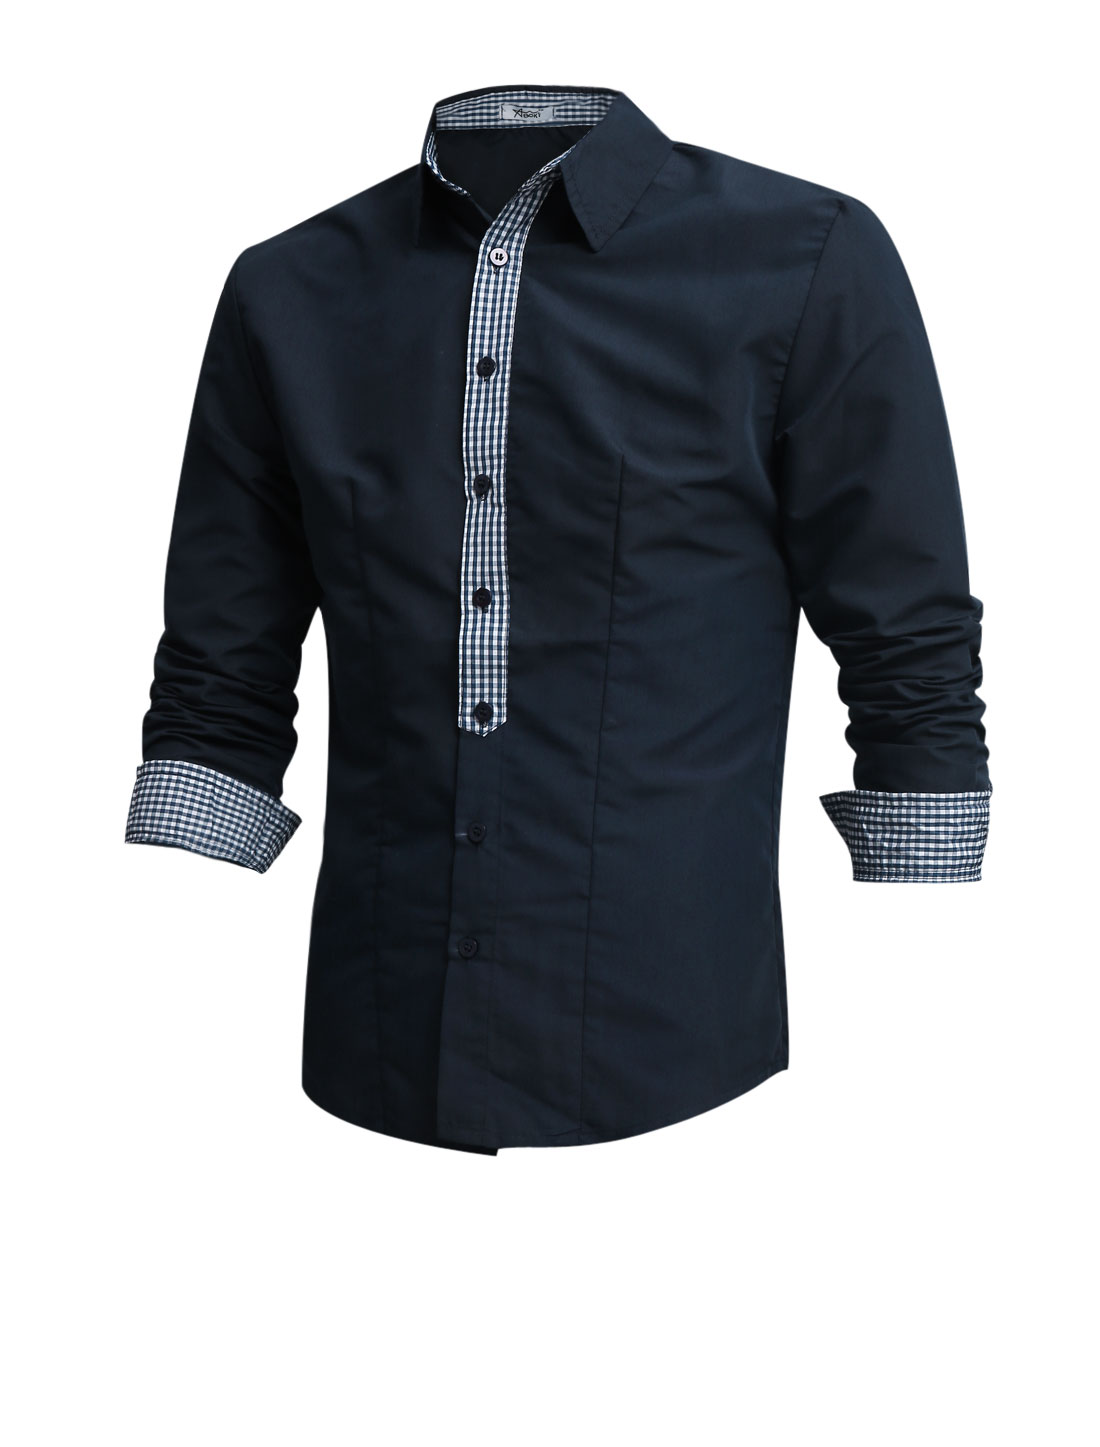 Men Point Collar Long Sleeve Single Breasted Casual Shirt Navy Blue M